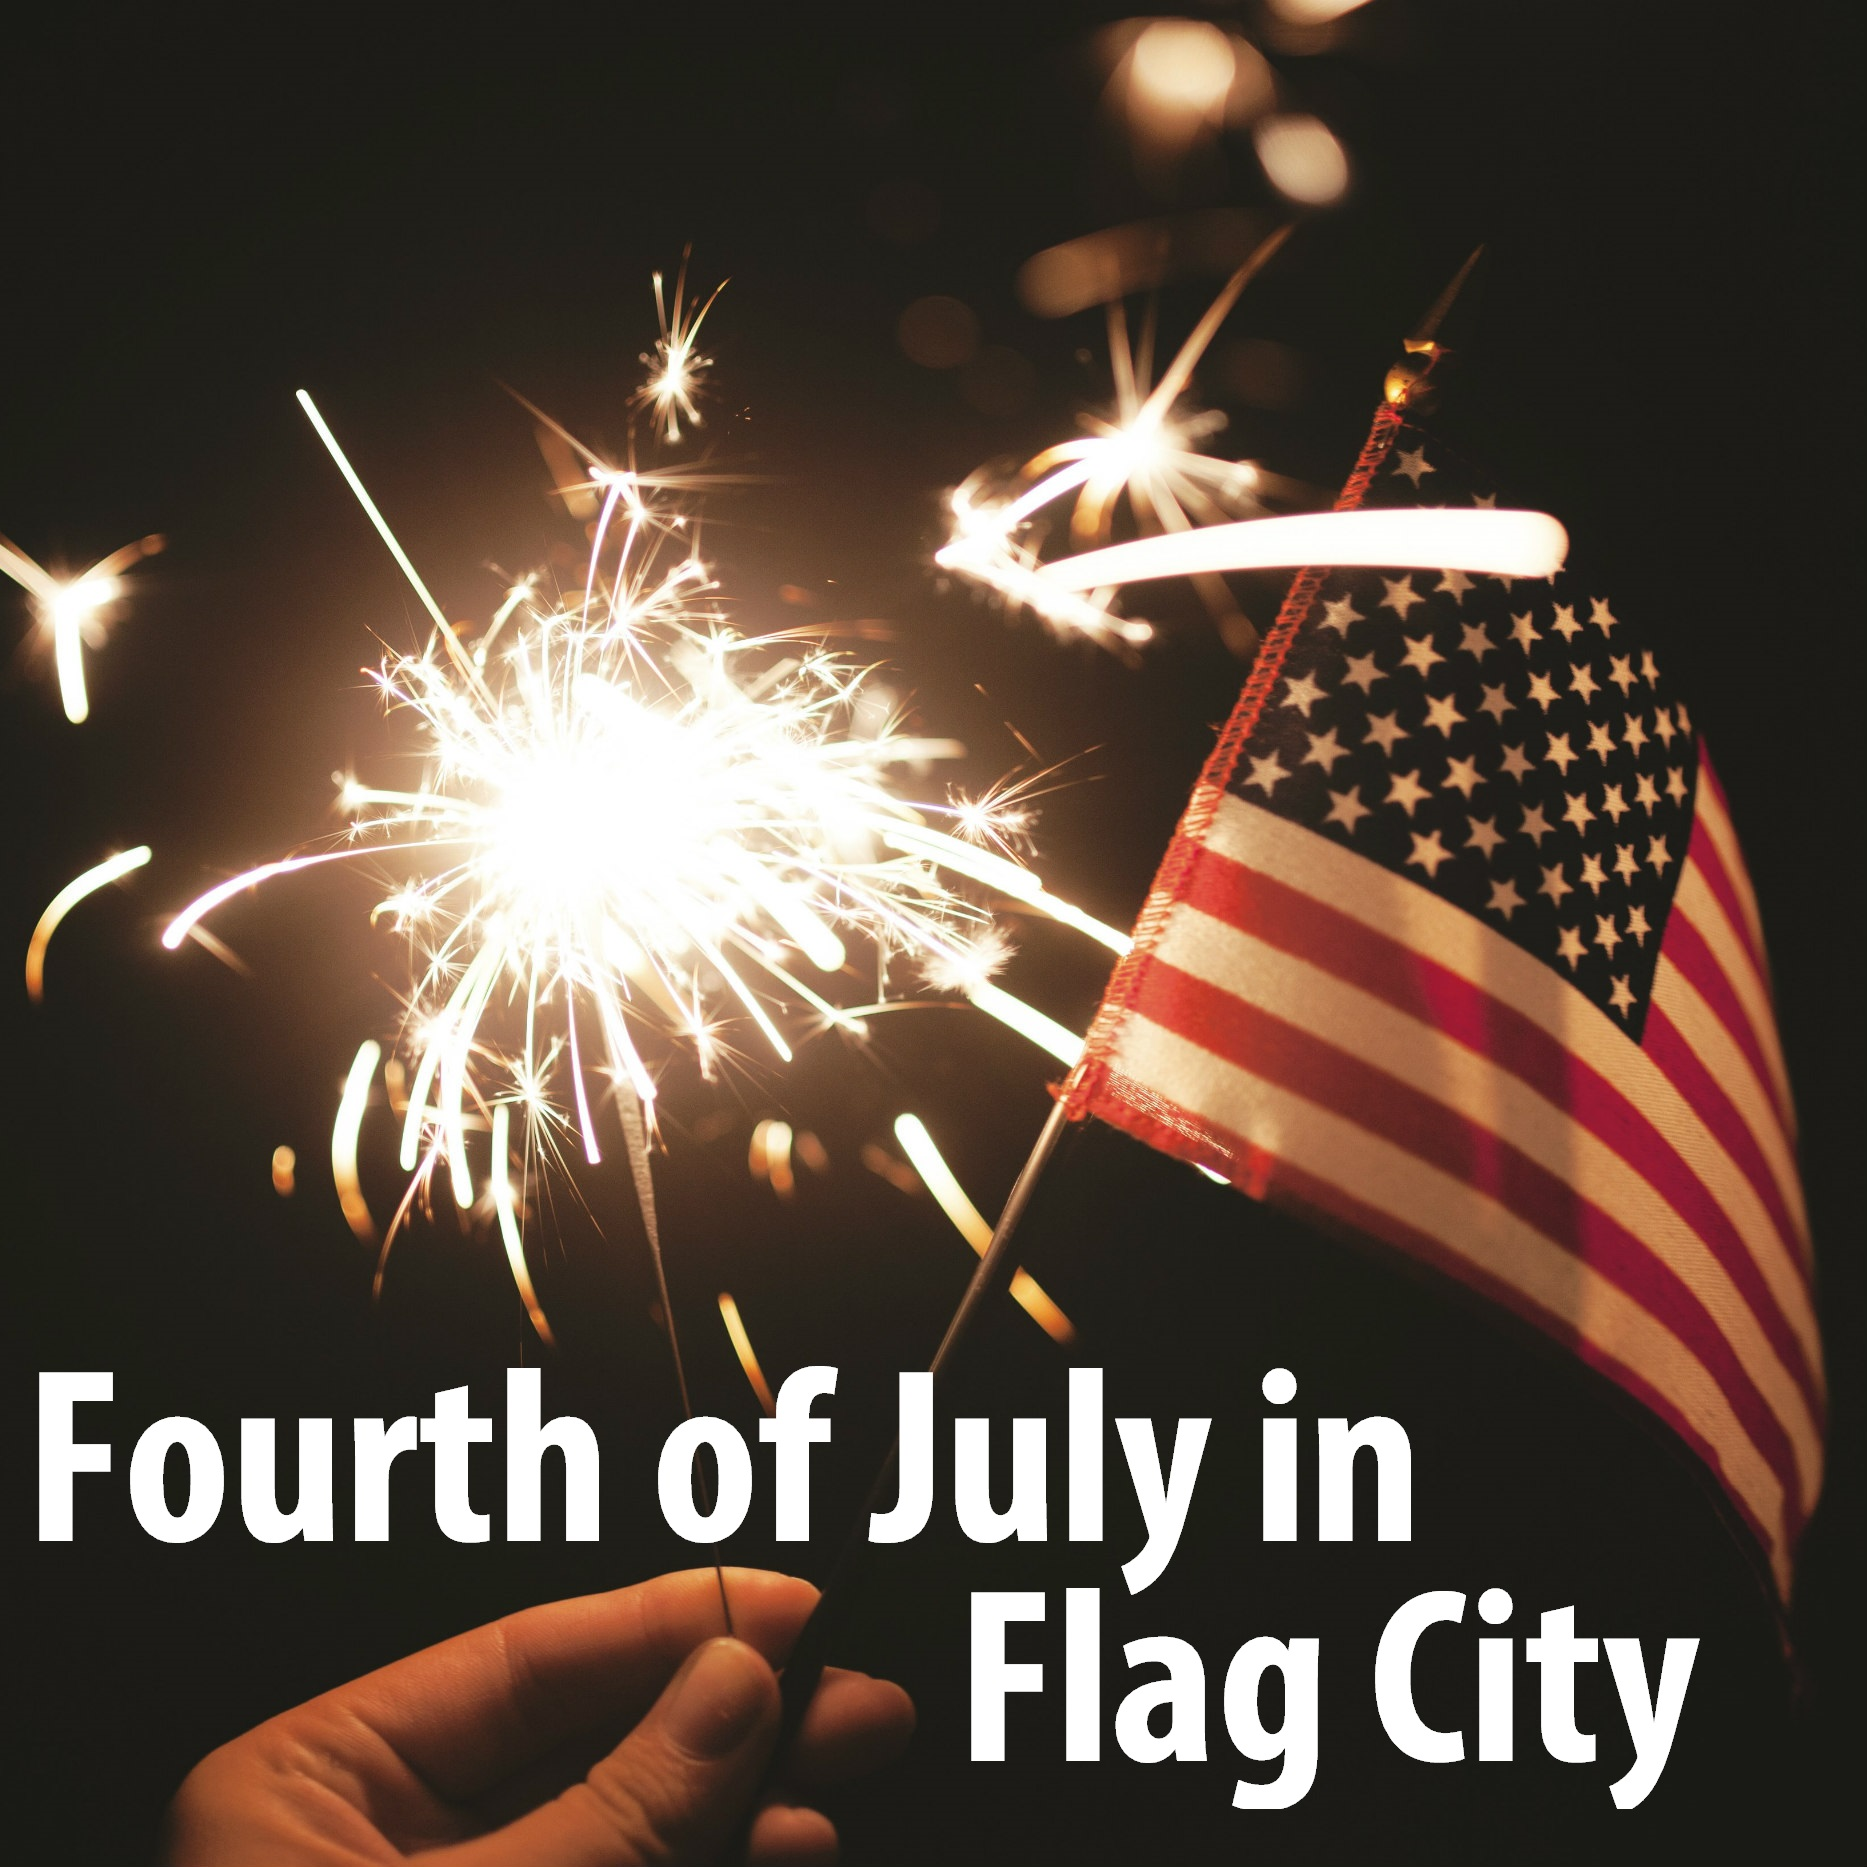 Celebrate Fourth of July in Flag City! See all the Independence Day celebrations taking place this year. • VisitFindlay.com